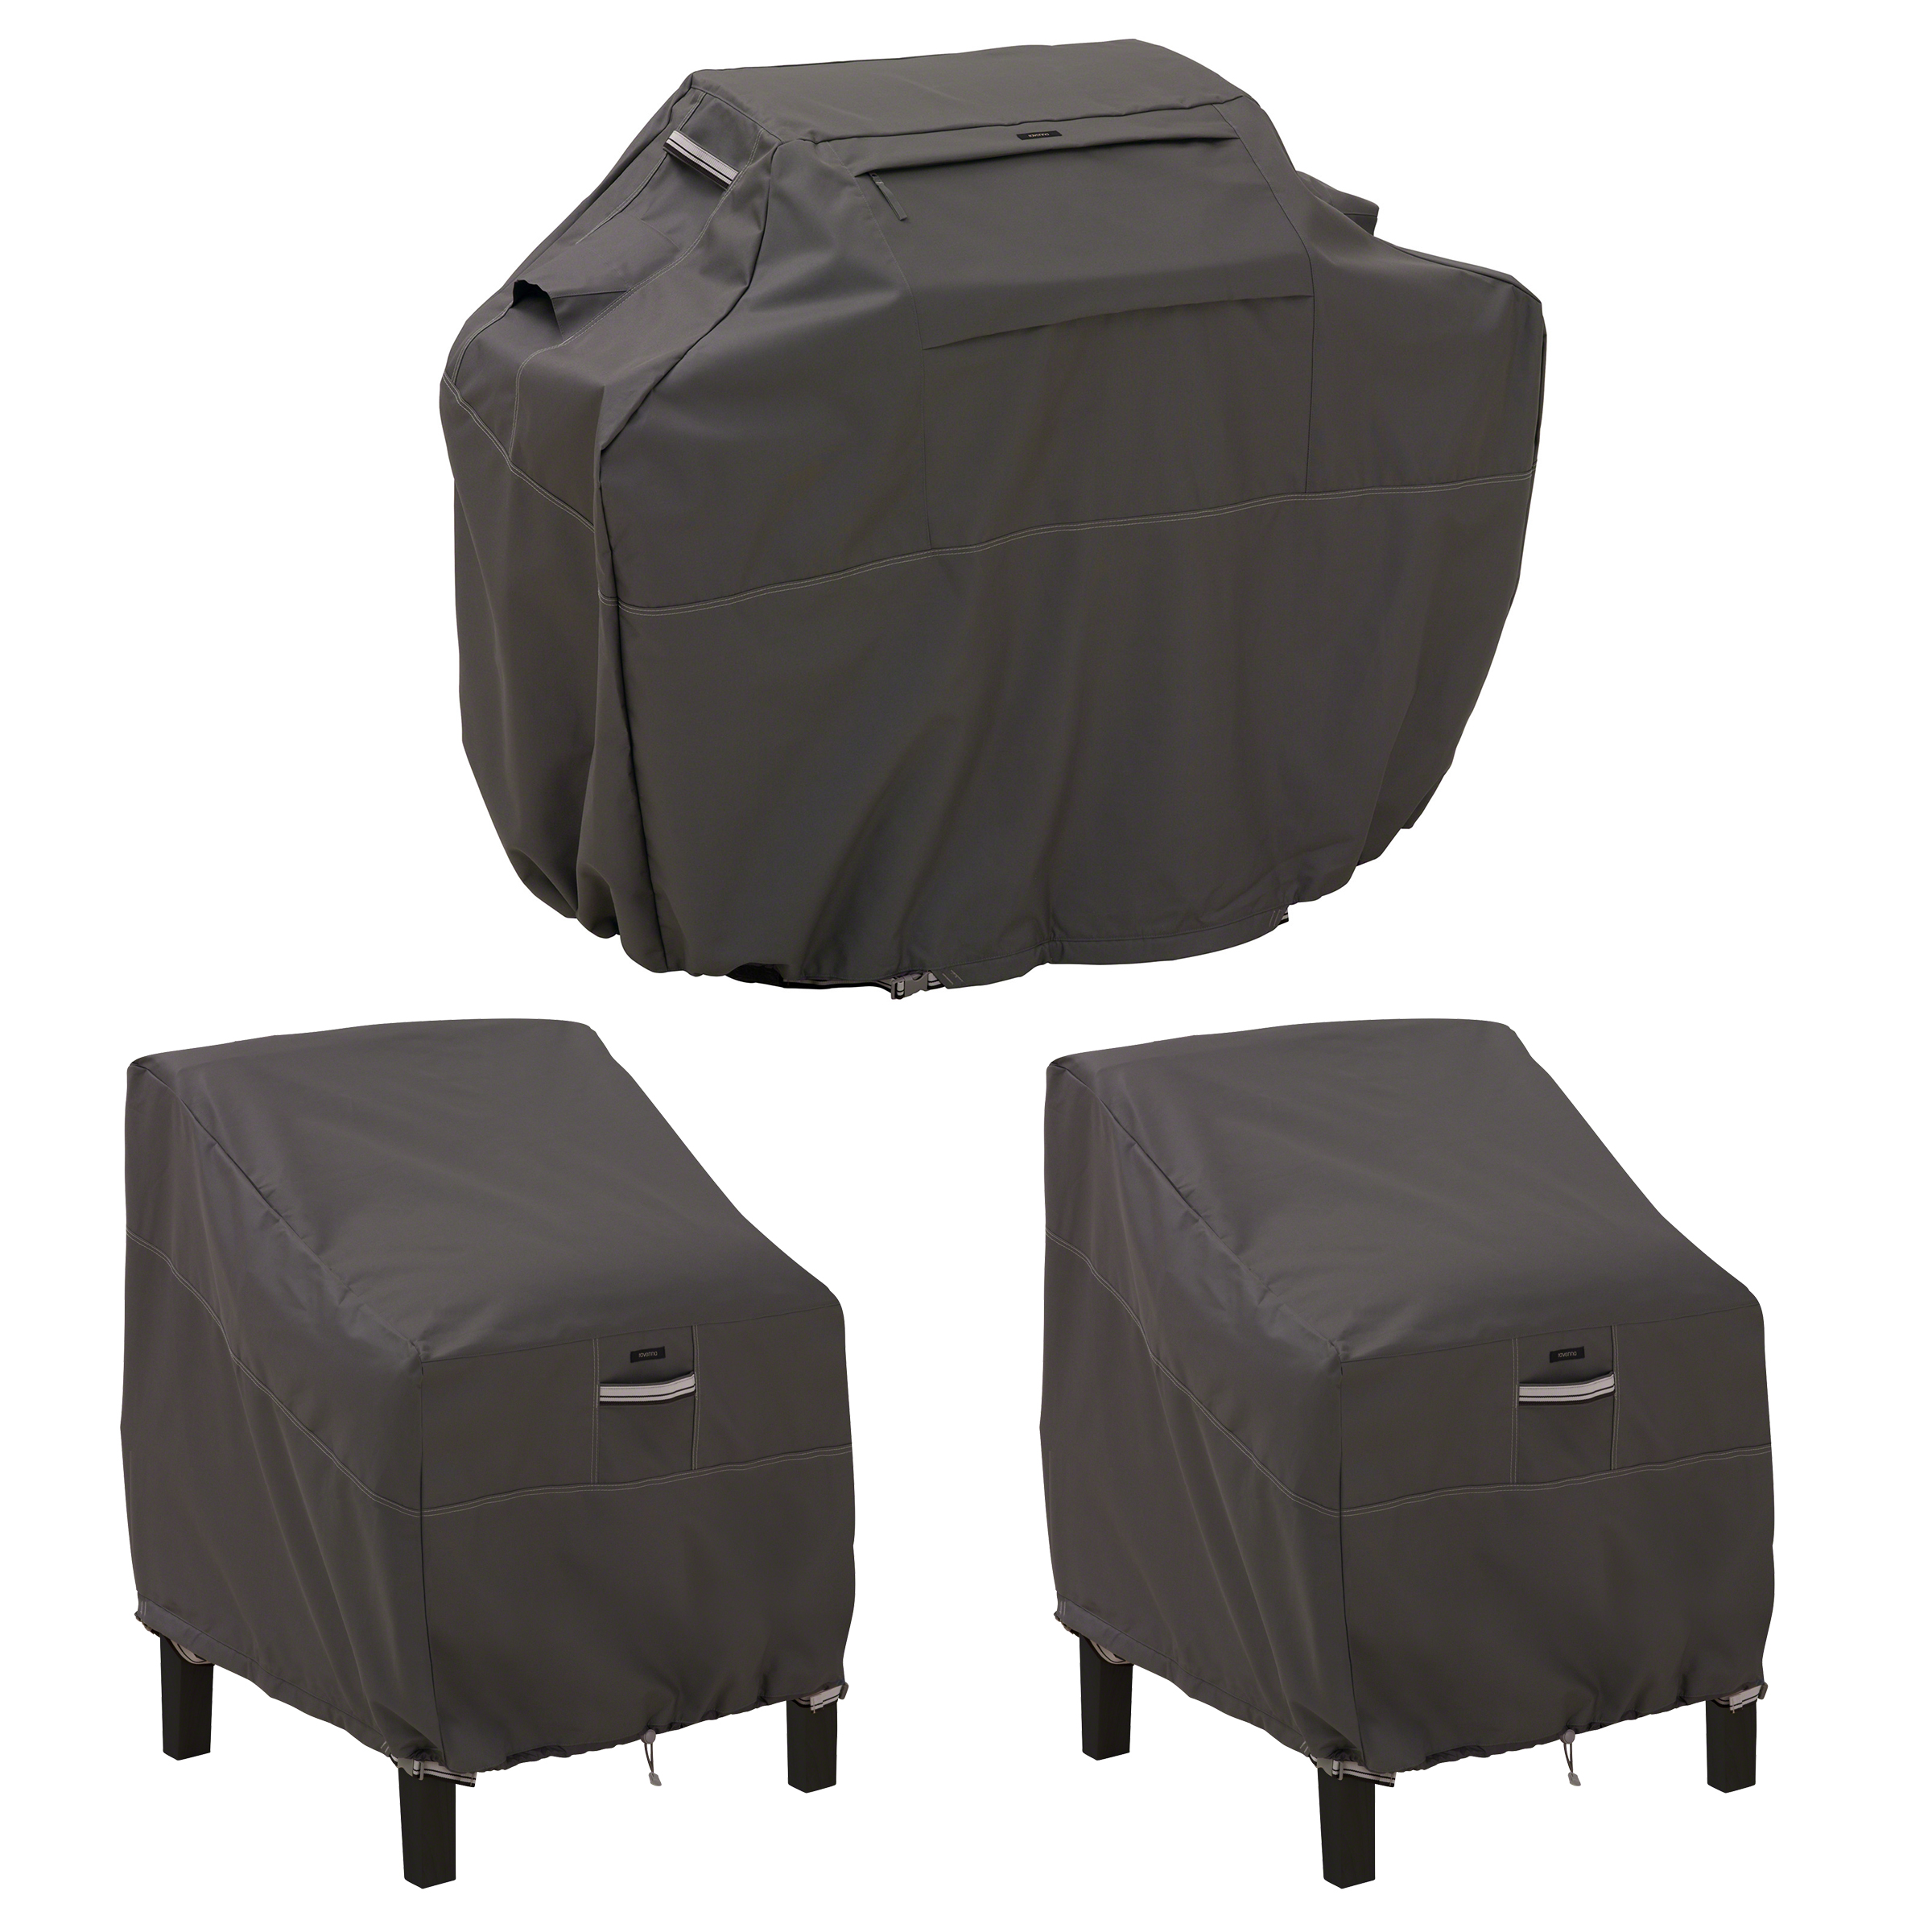 Classic Accessories Ravenna® Medium Grill Cover and Patio Lounge Chair Cover Bundle - Premium Outdoor Covers with Durable Water Resistant Fabric (55-925-035103-EC)